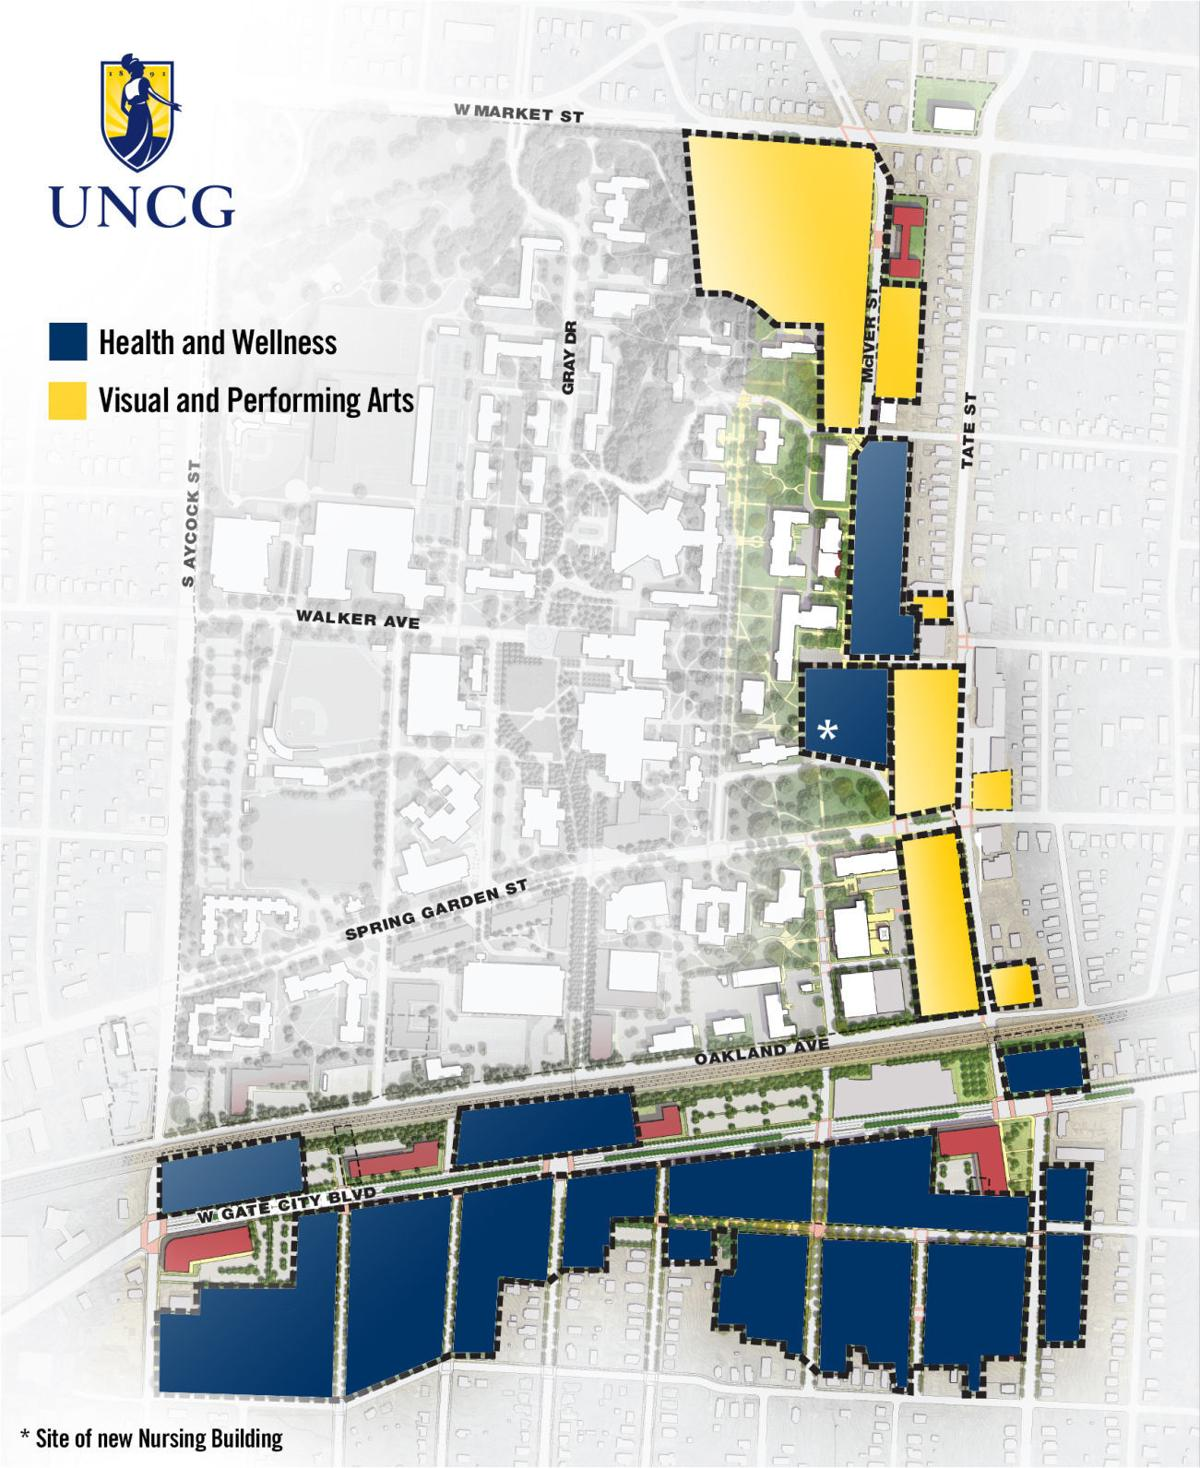 Unc Greensboro Campus Map.Uncg S Millennial Campus Plan Takes Big Step Forward Schools